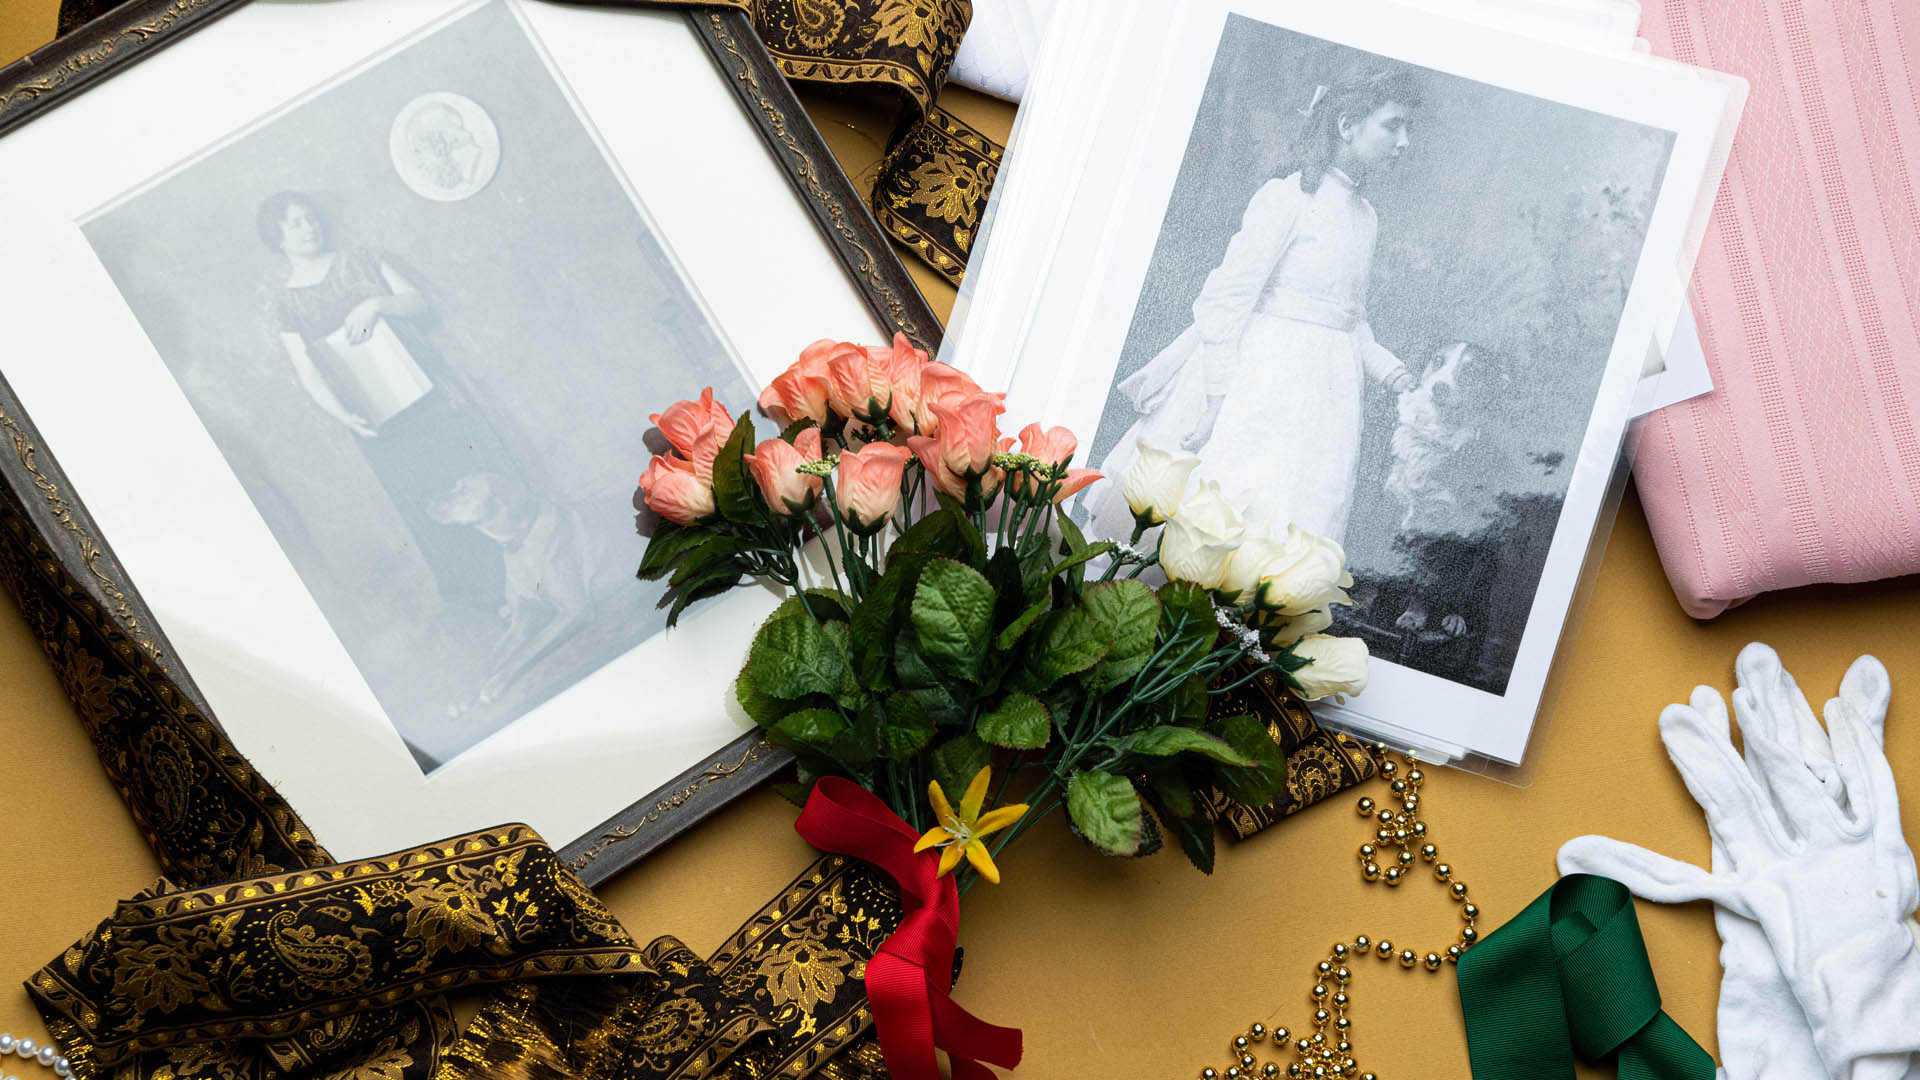 Scattered items including photographs of Helen Keller as a child and adult, white gloves, a spray of flowers, beads, and colored fabrics